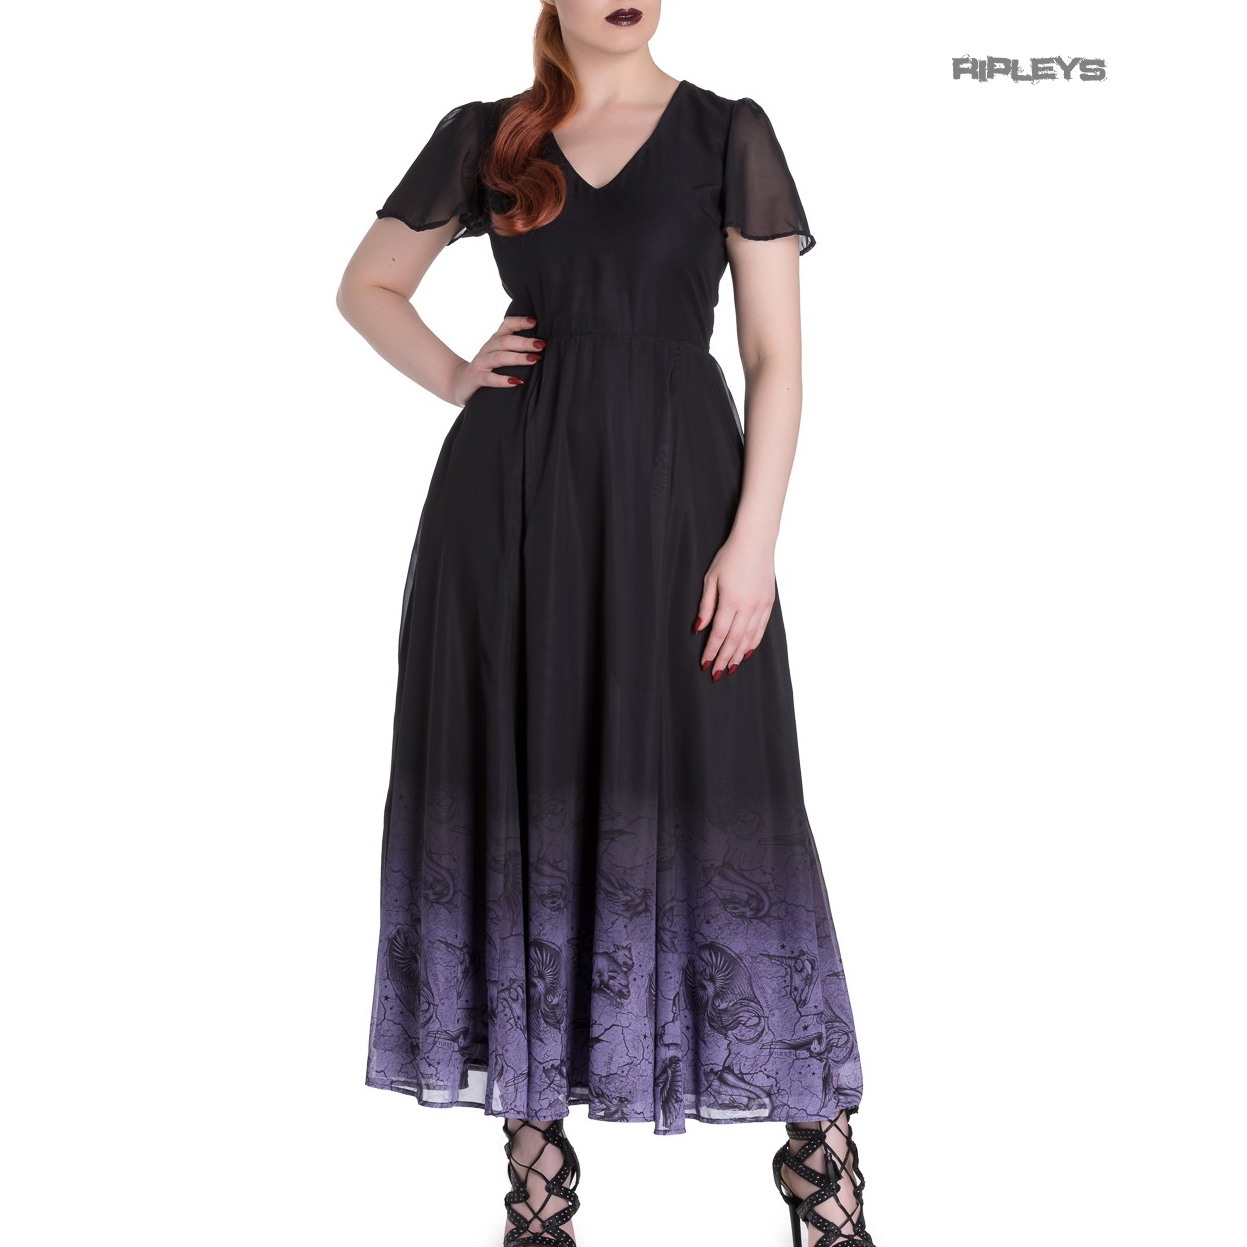 Hell-Bunny-Spin-Doctor-Goth-Maxi-Dress-EVADINE-Purple-Black-All-Sizes thumbnail 2